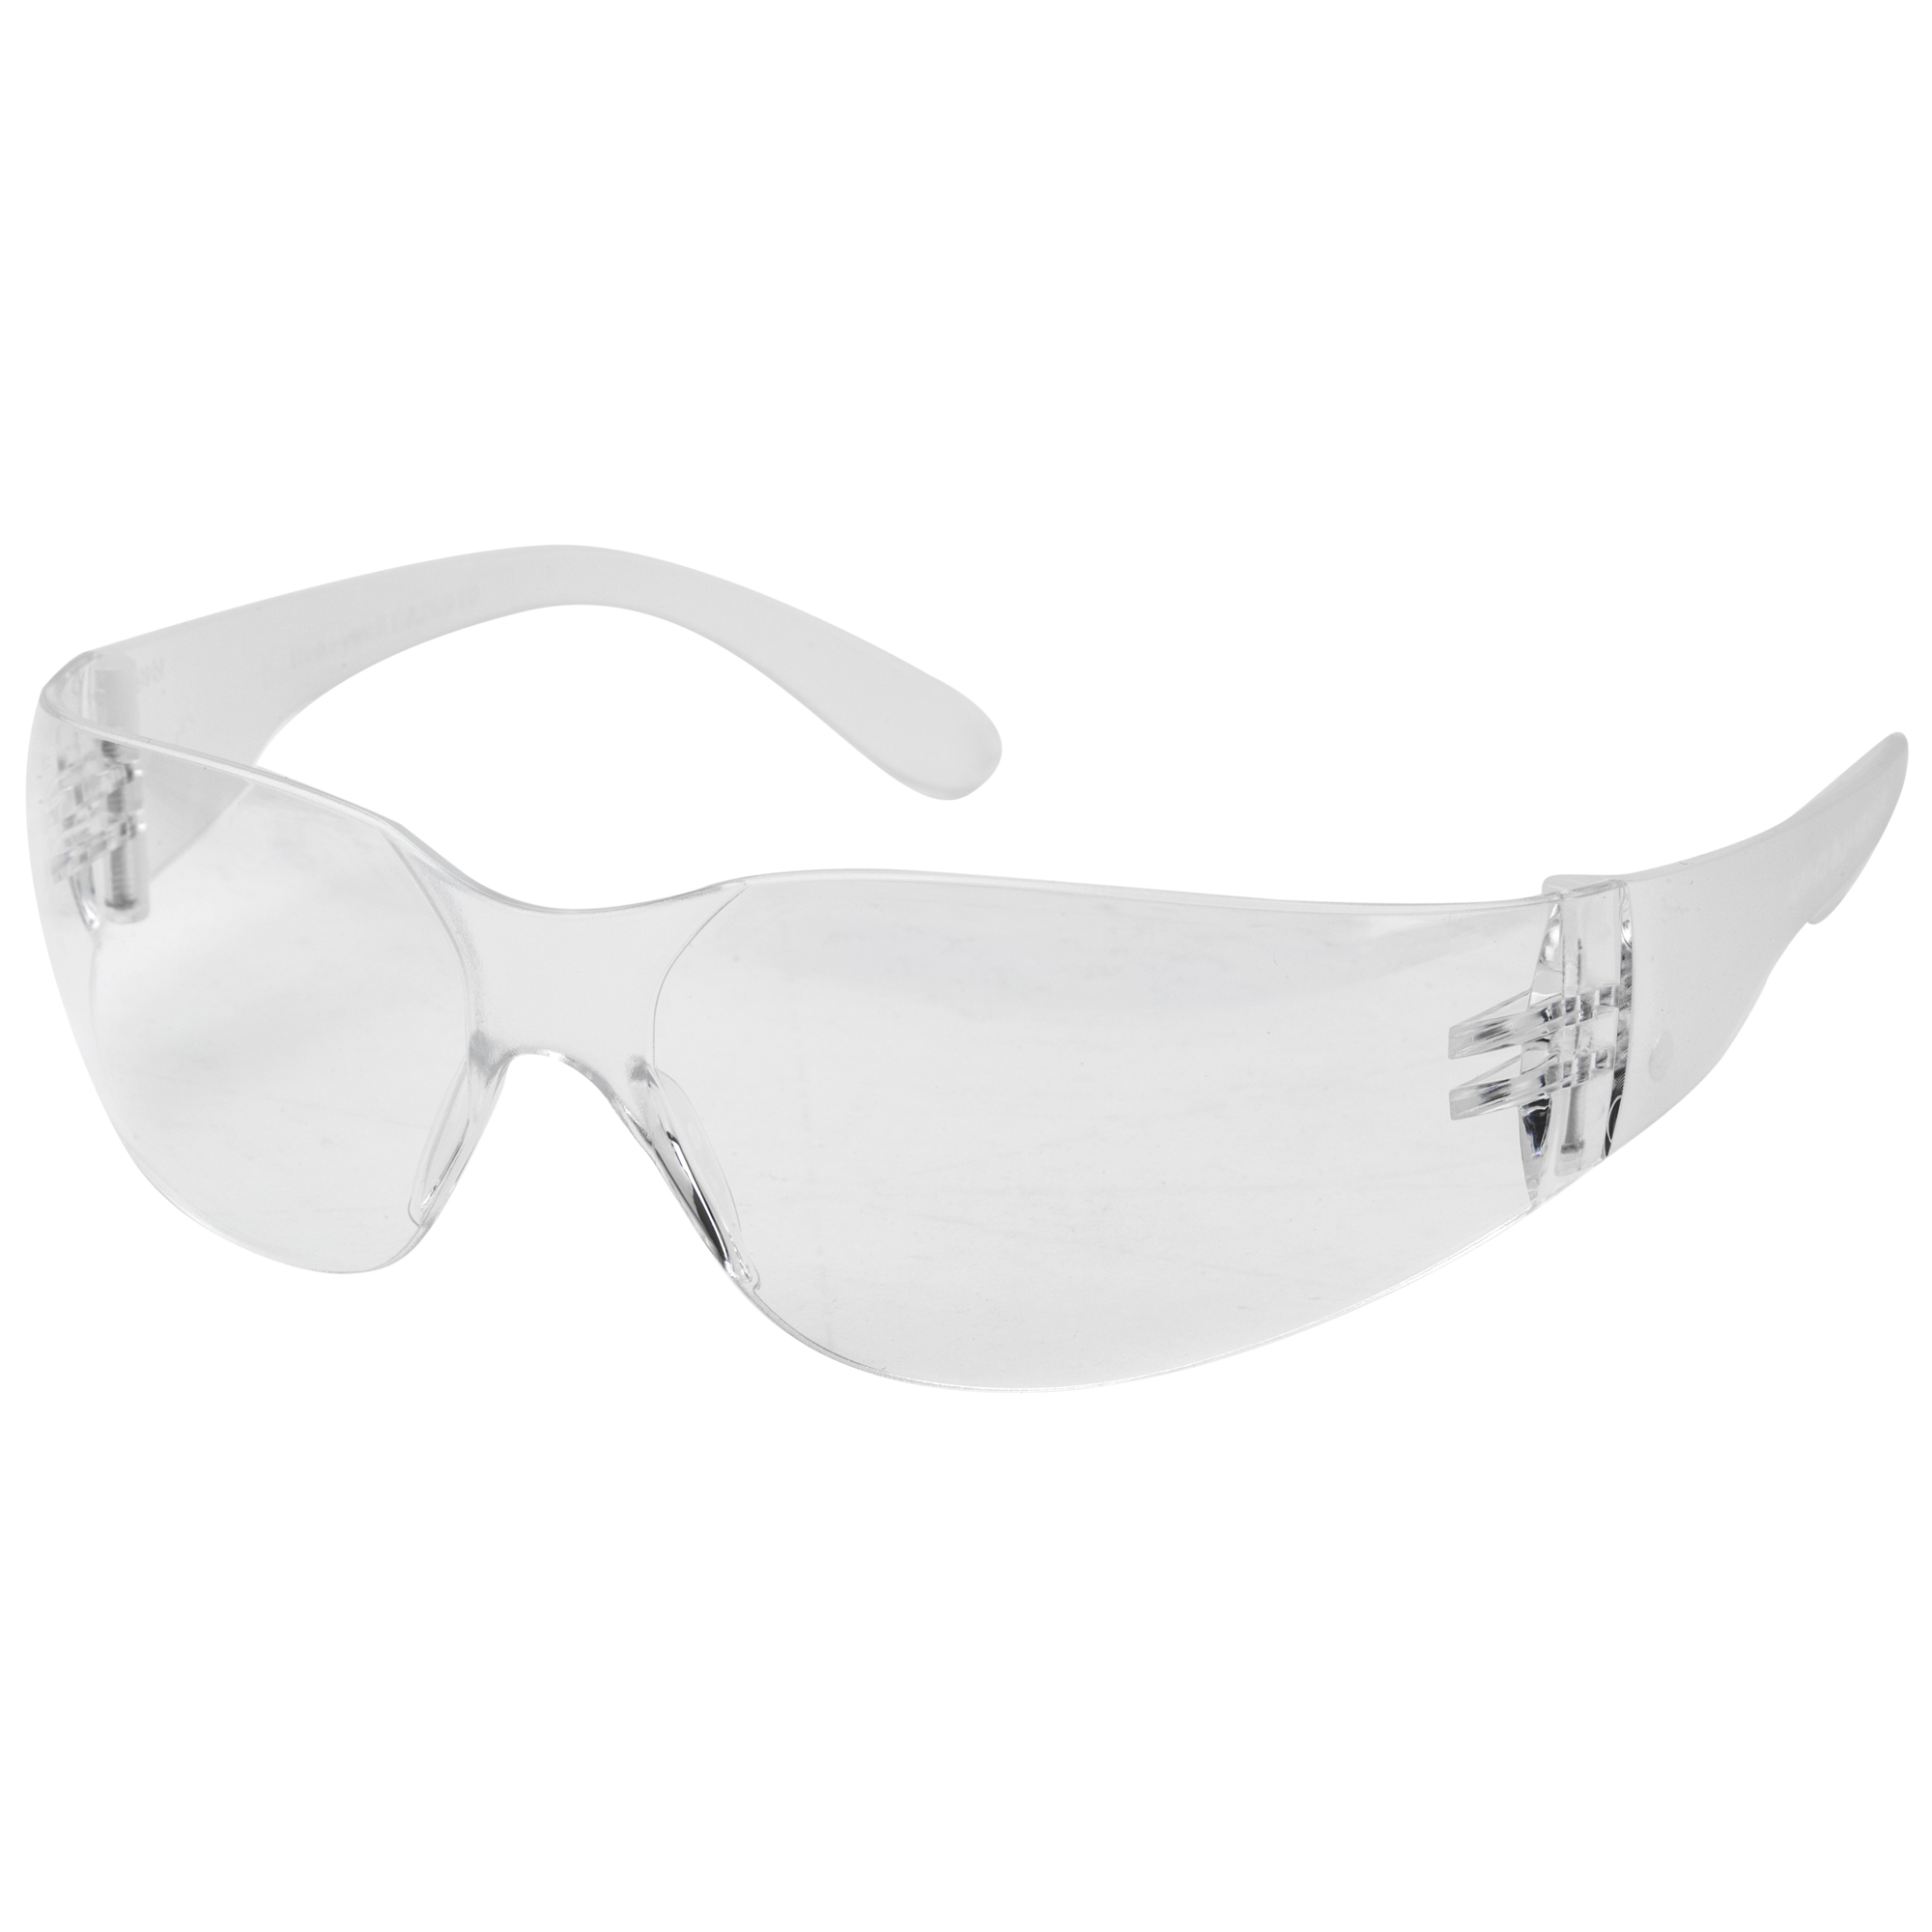 """The XV100 Safety Eyewear includes frosted frames that utilize Anti-Scratch properties. Offering great protection at an amazing price"""" this pair of Safety Glasses is designed for general purpose use."""